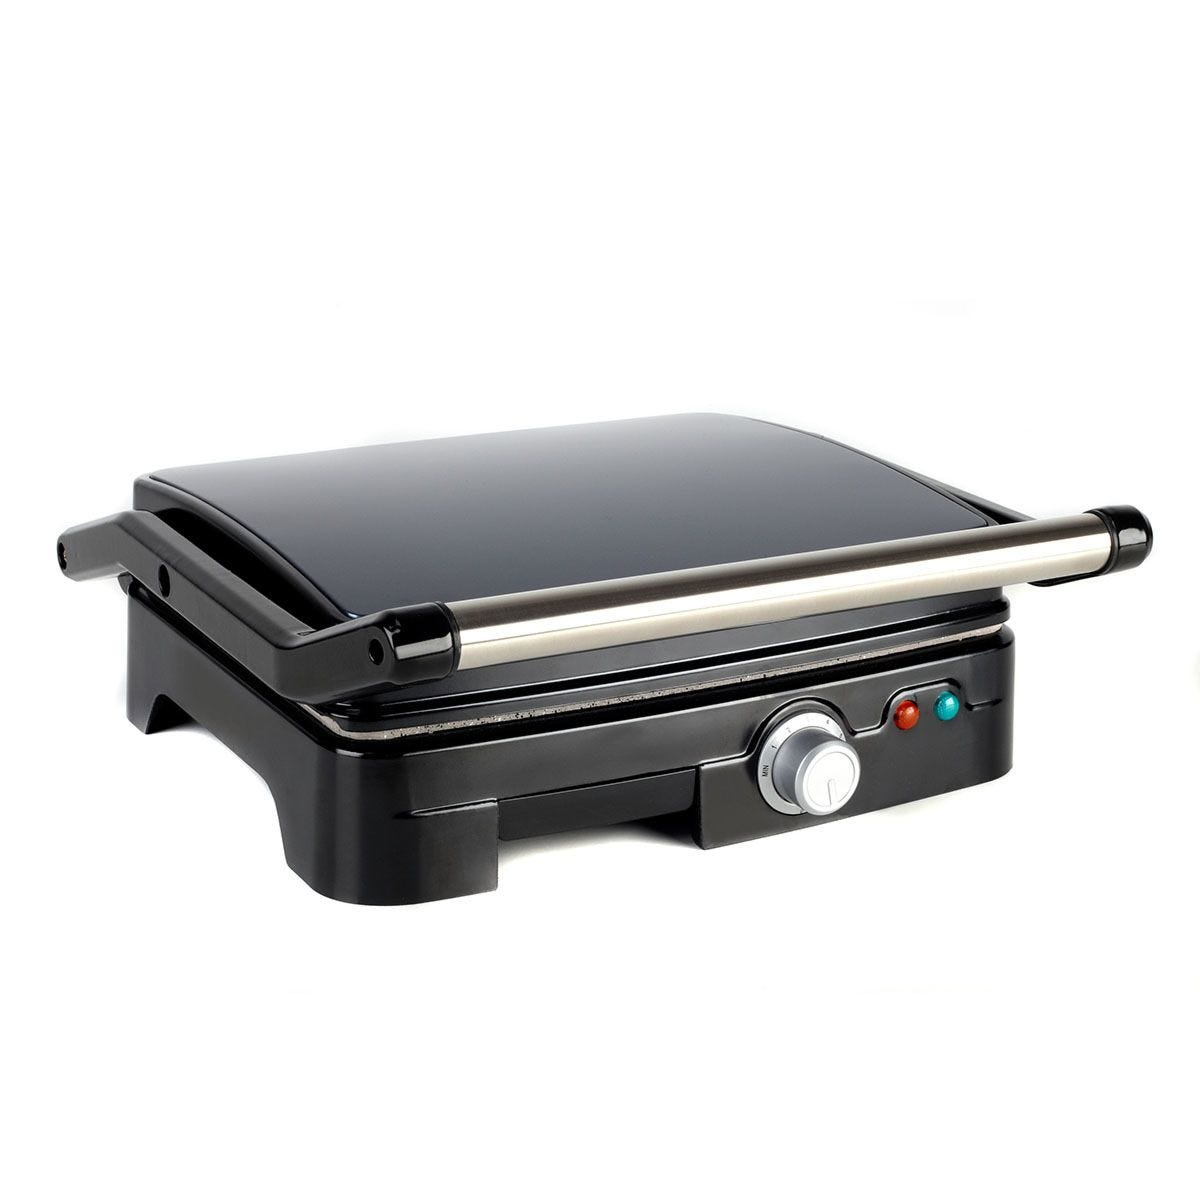 Salter EK2003 Marble Ceramic 180° Low Fat 1800W Health Grill and Sandwich Maker – Black